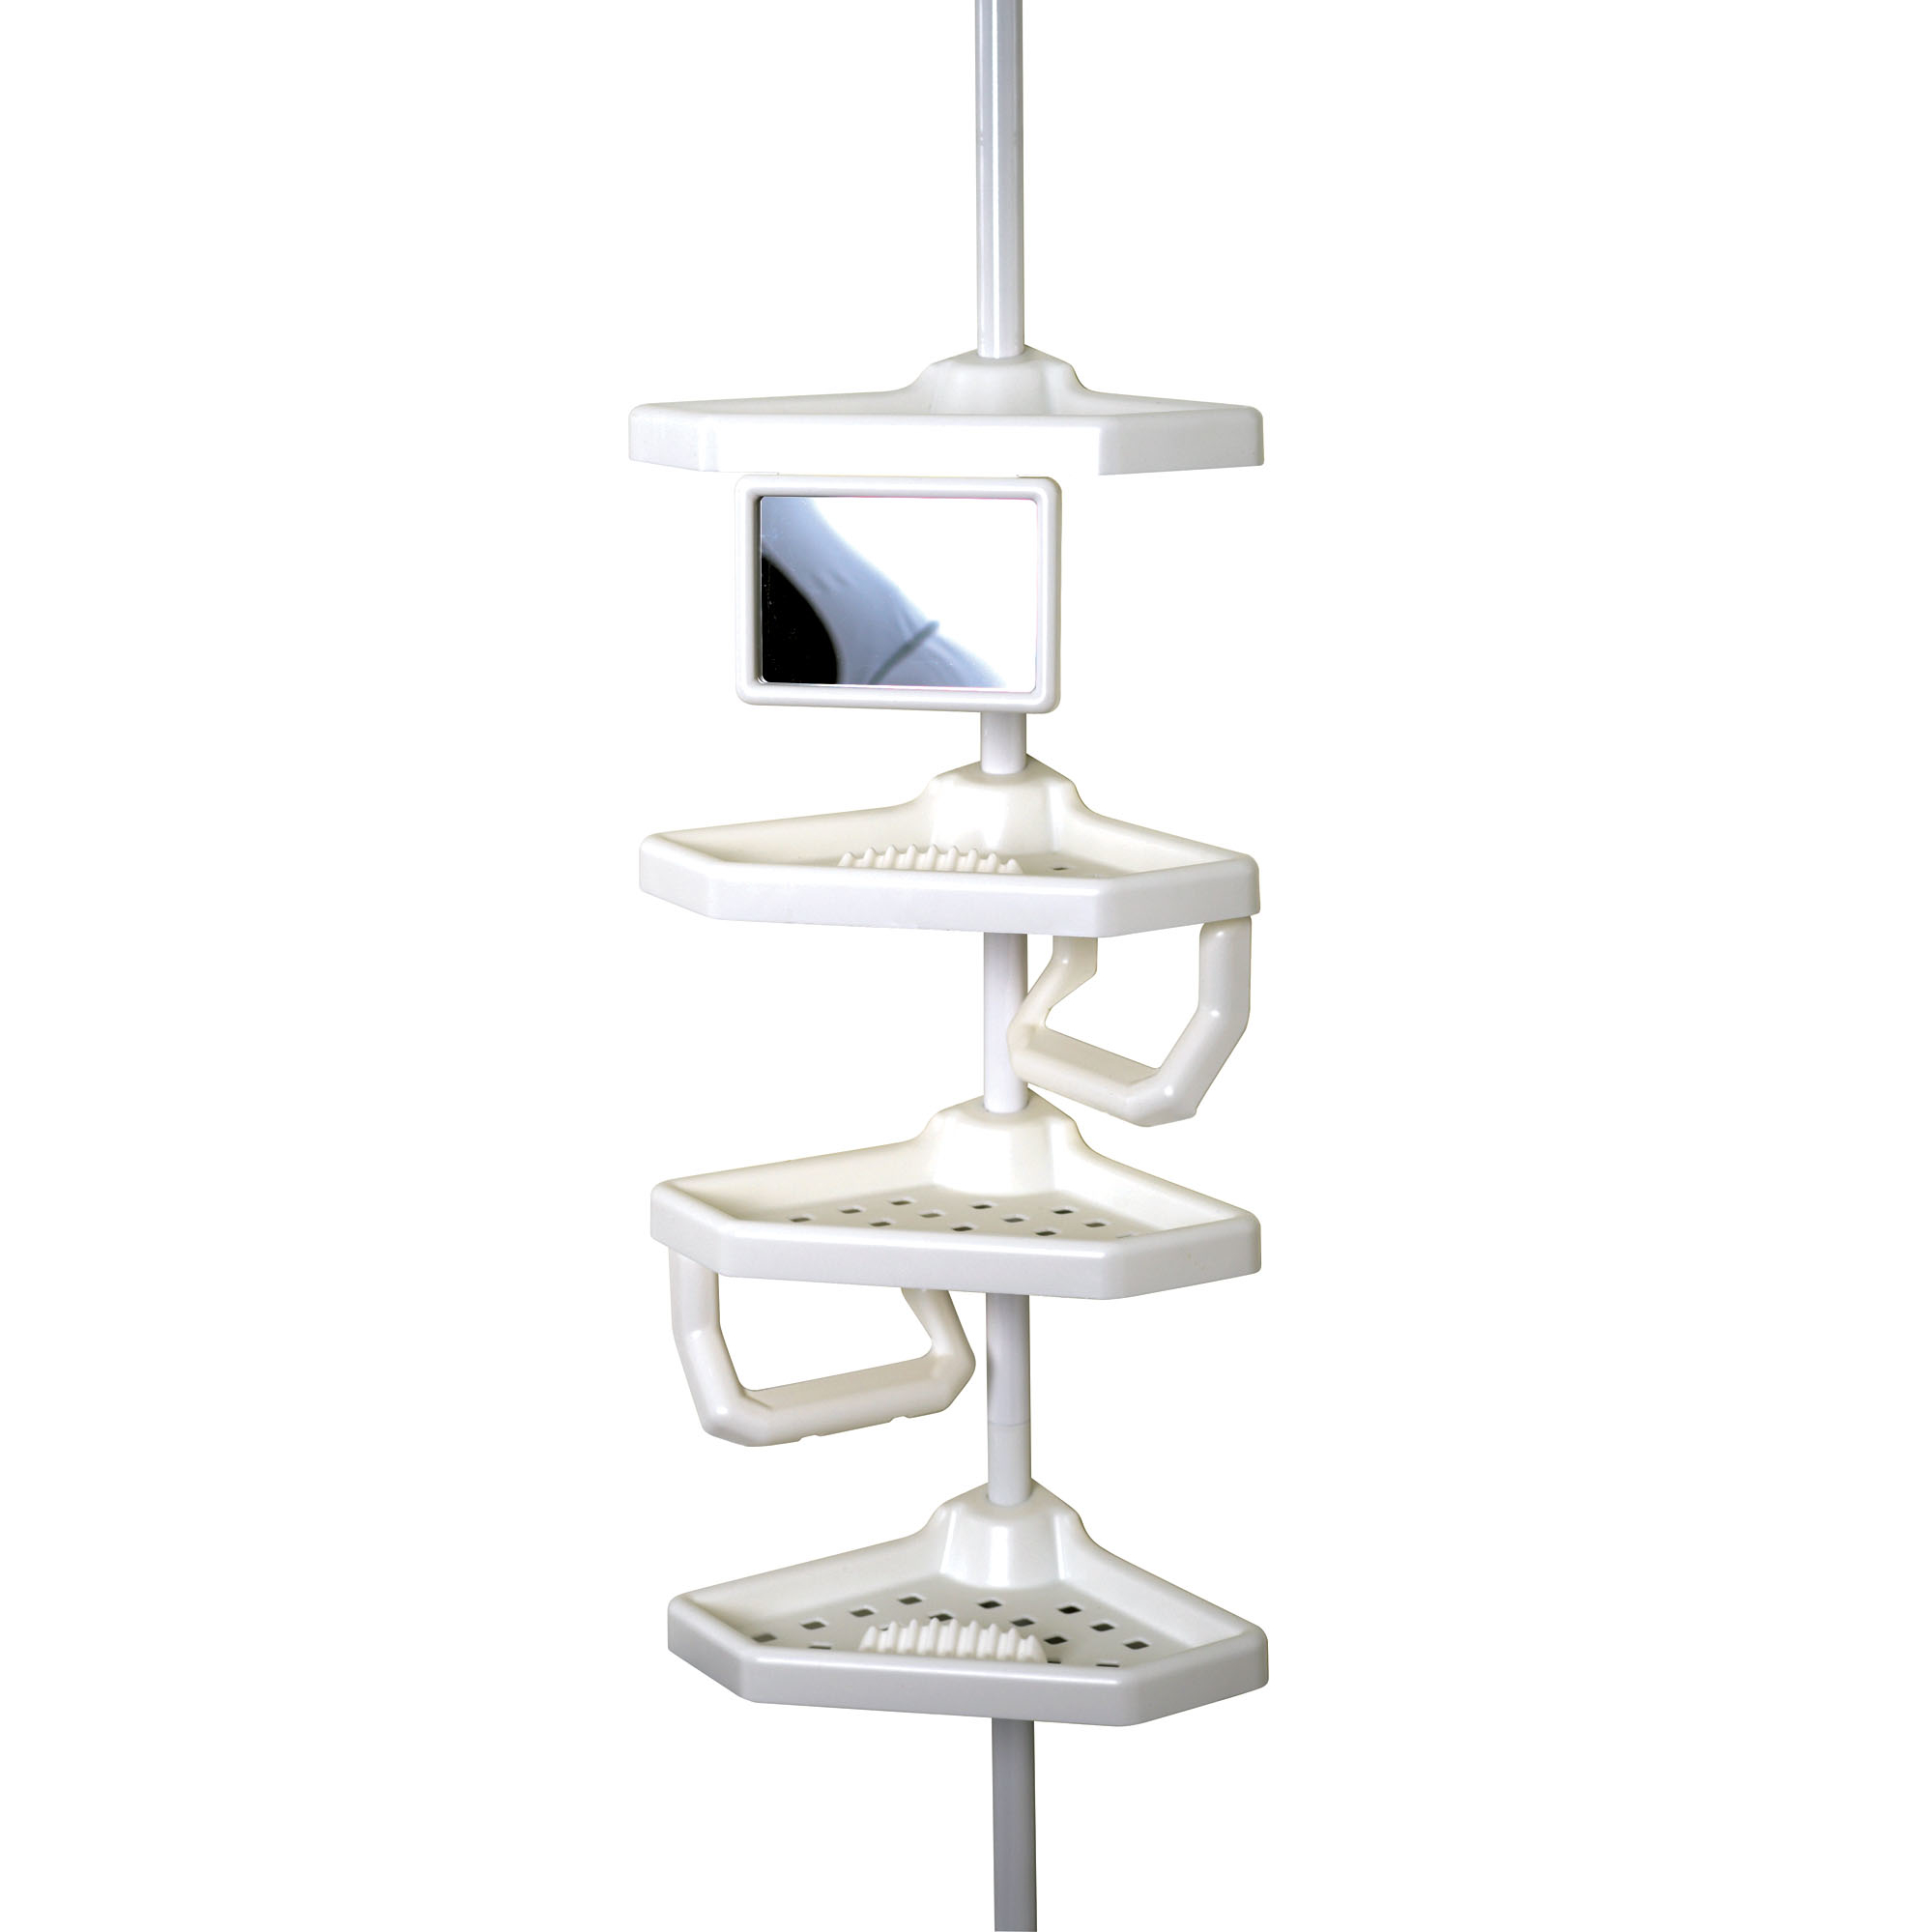 Zenna Home Tension Corner Pole Caddy, White